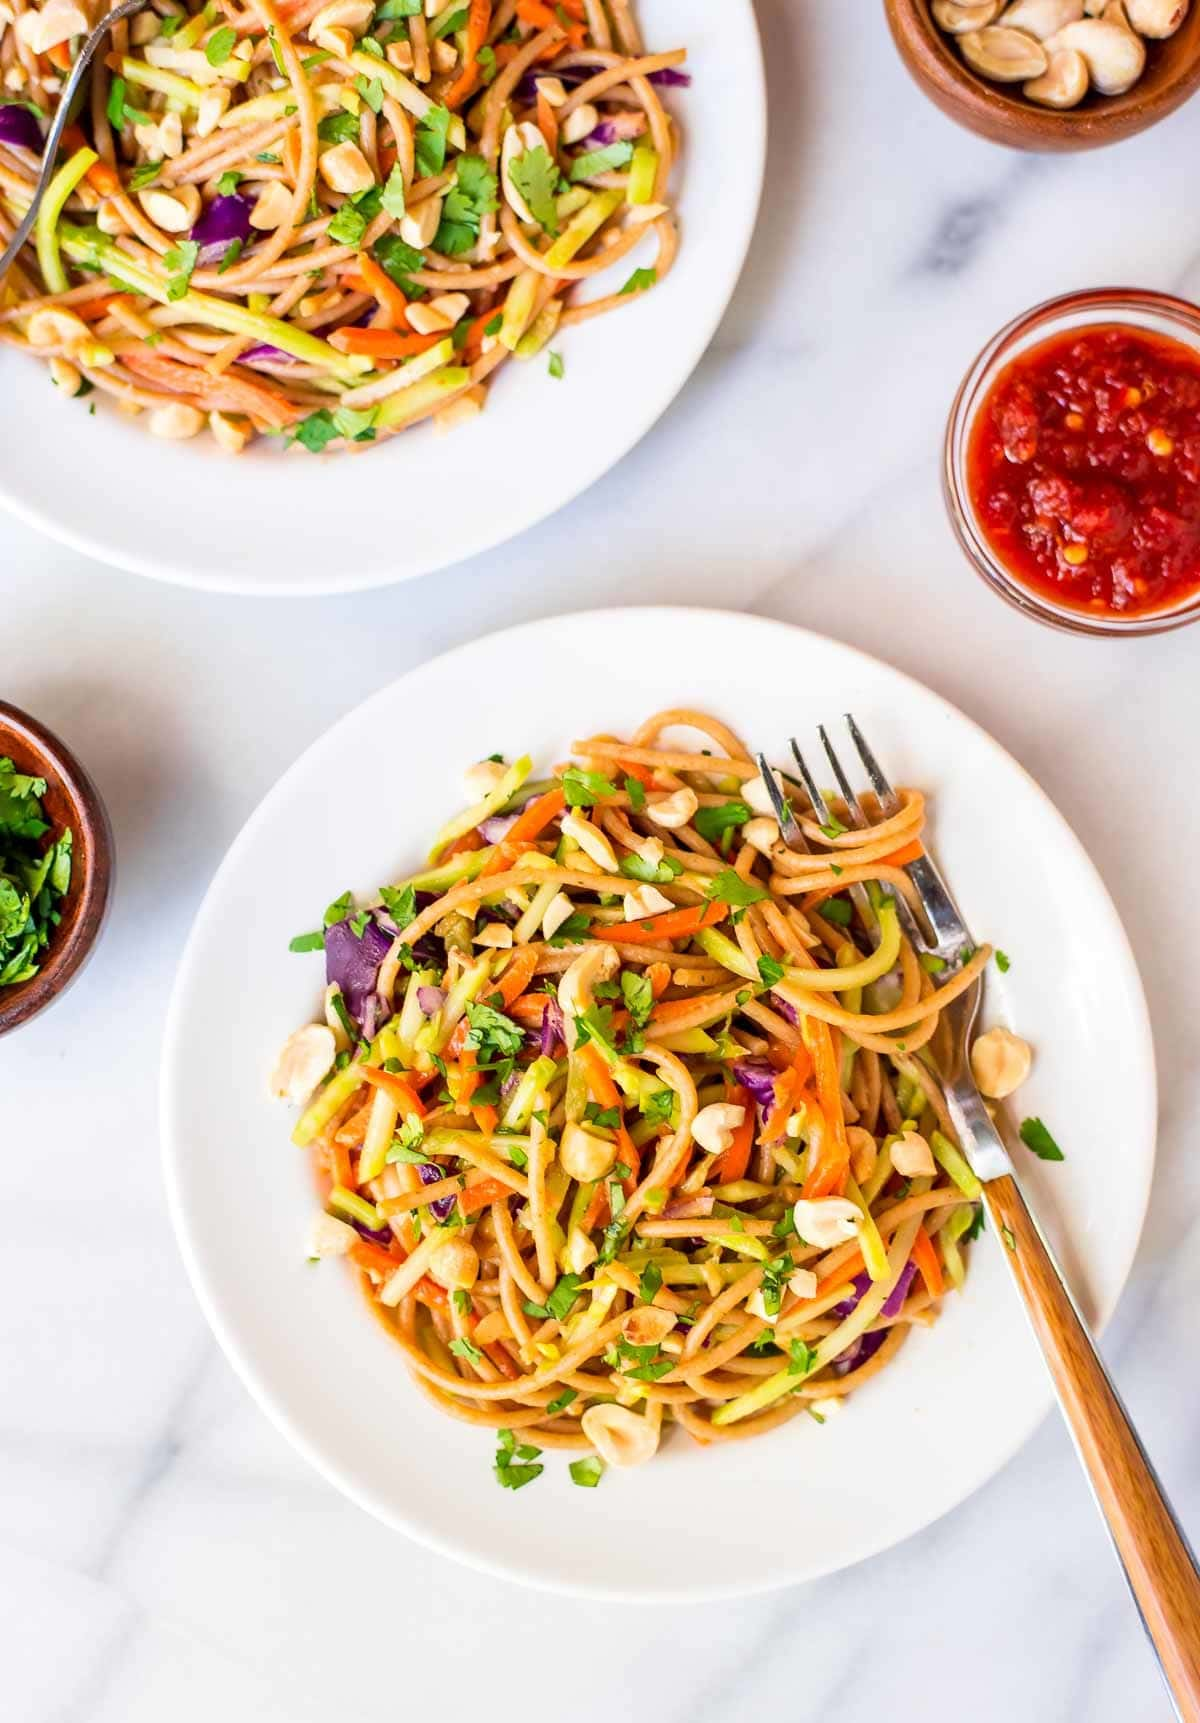 Asian Noodle Salad With Creamy Peanut Dressing Quick And Easy To Make Lightened Up